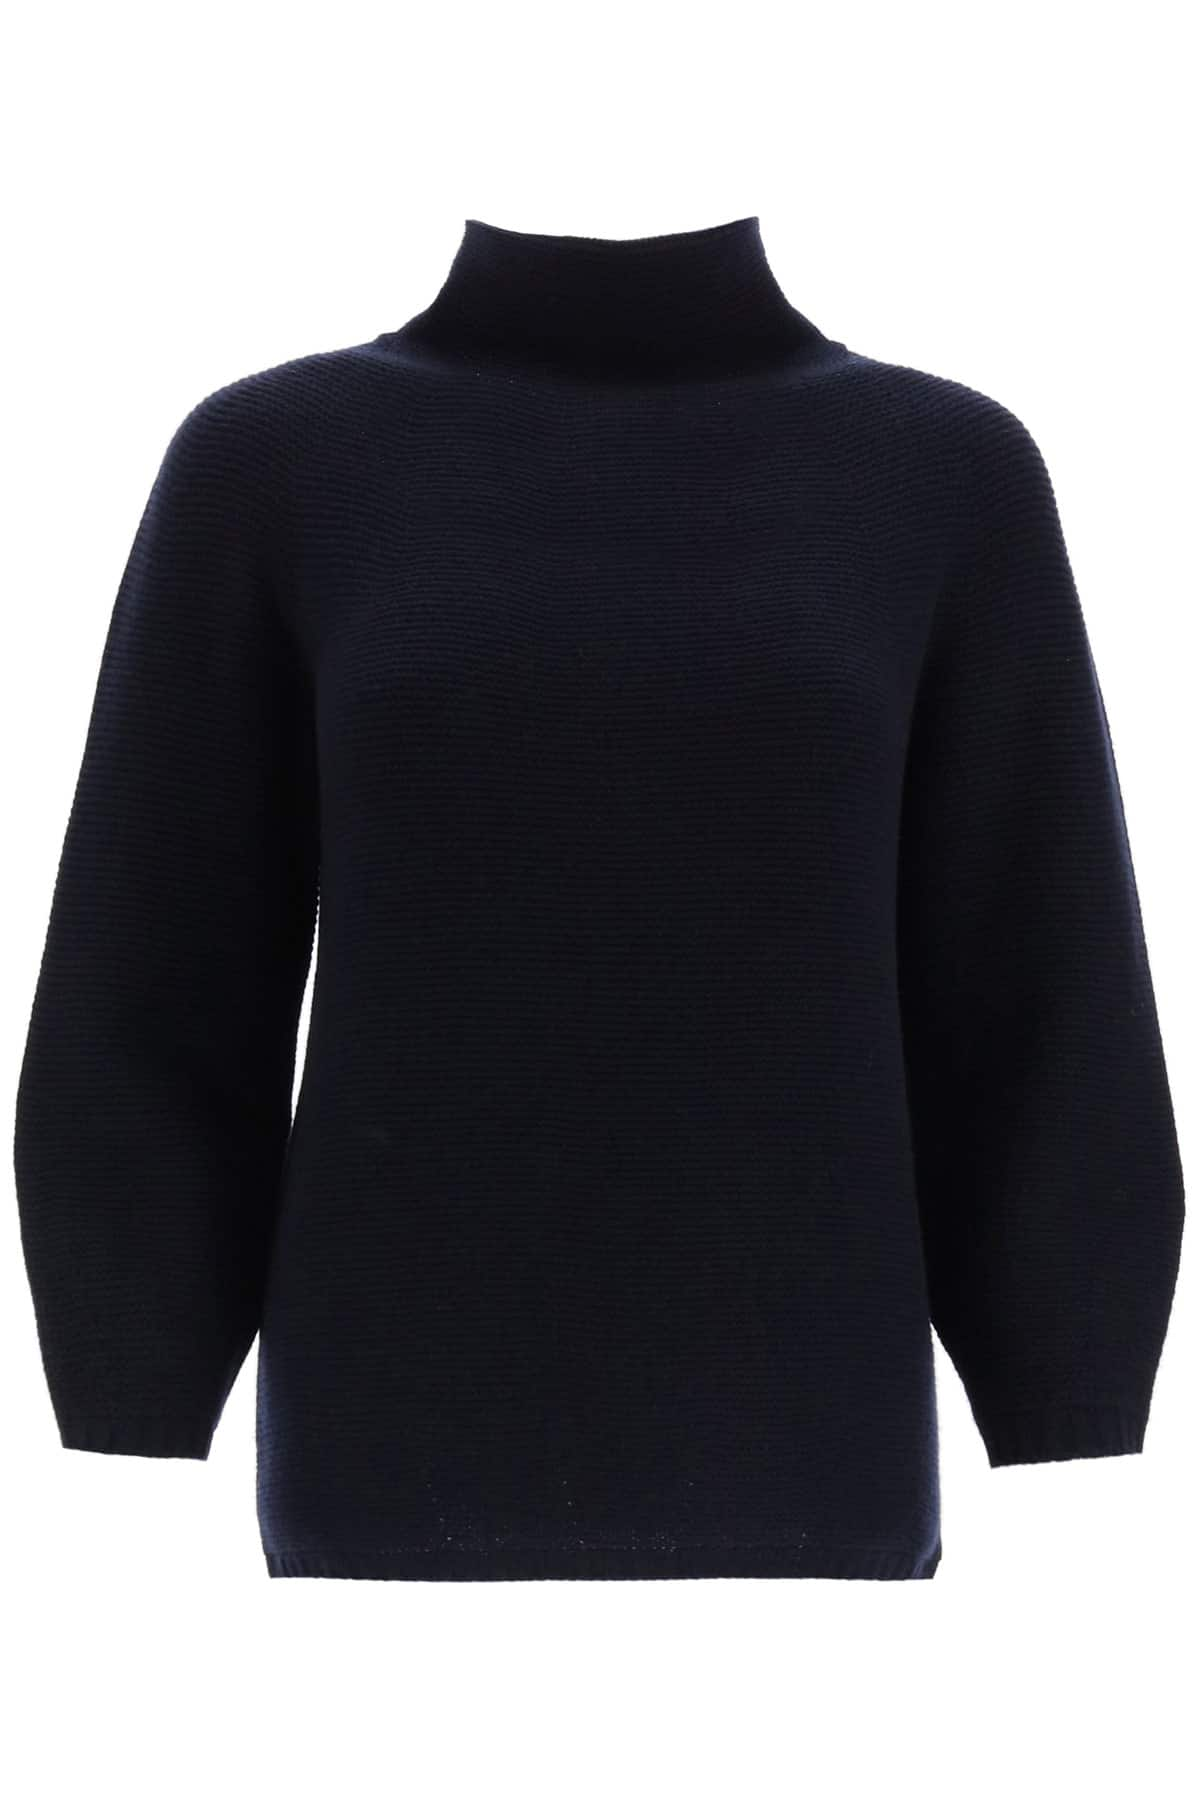 MAX MARA ETRUSCO SWEATER IN WOOL AND CASHMERE L Blue Wool, Cashmere